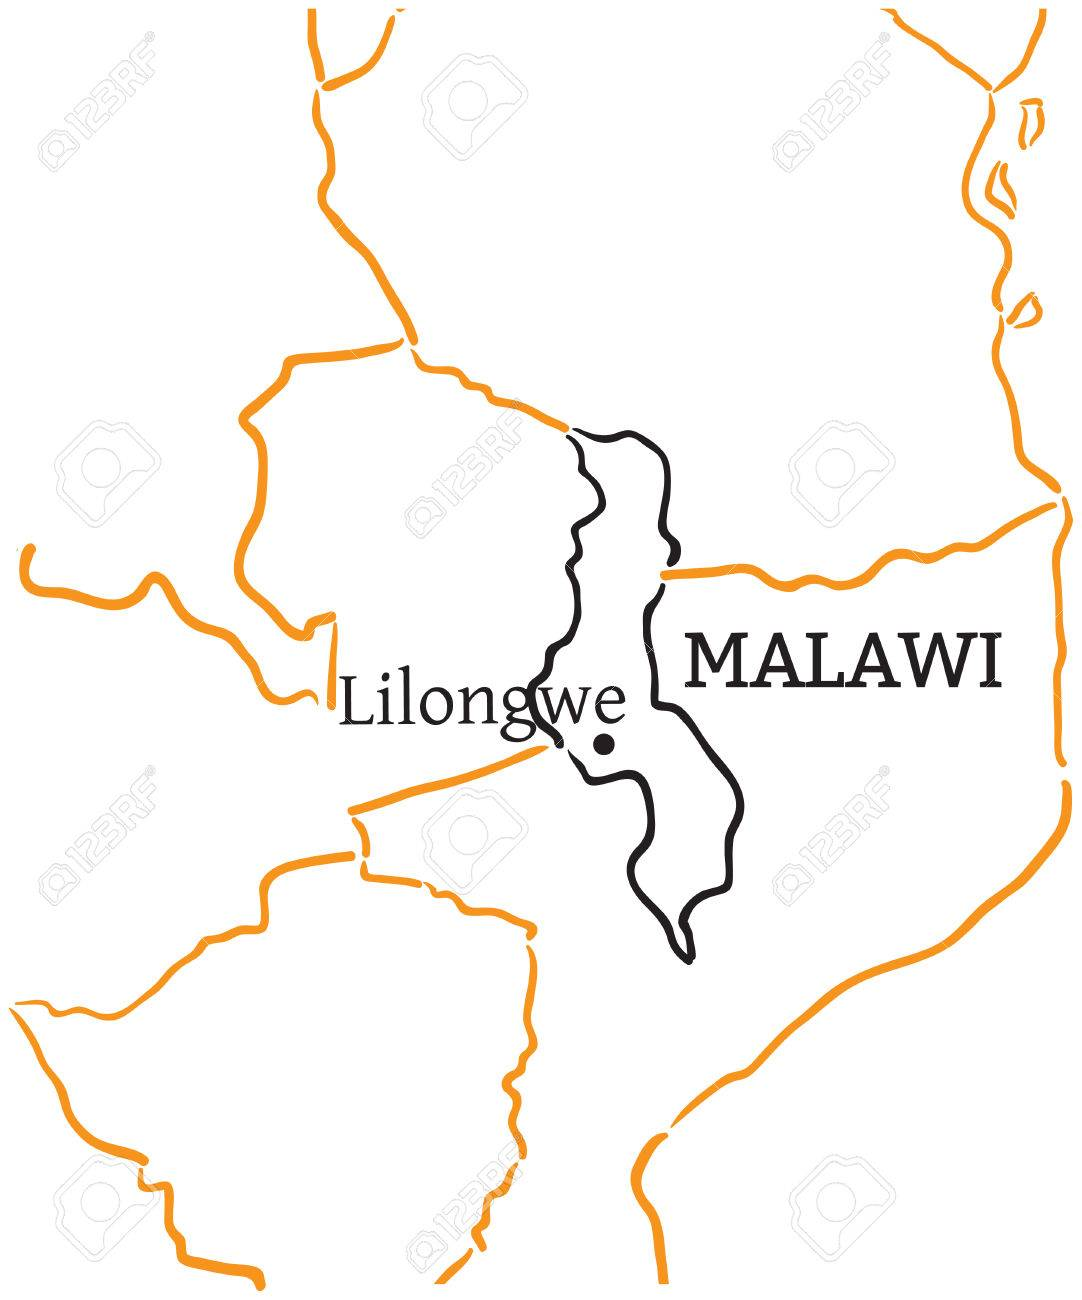 Malawi Country With Its Capital Lilongwe In Africa Handdrawn